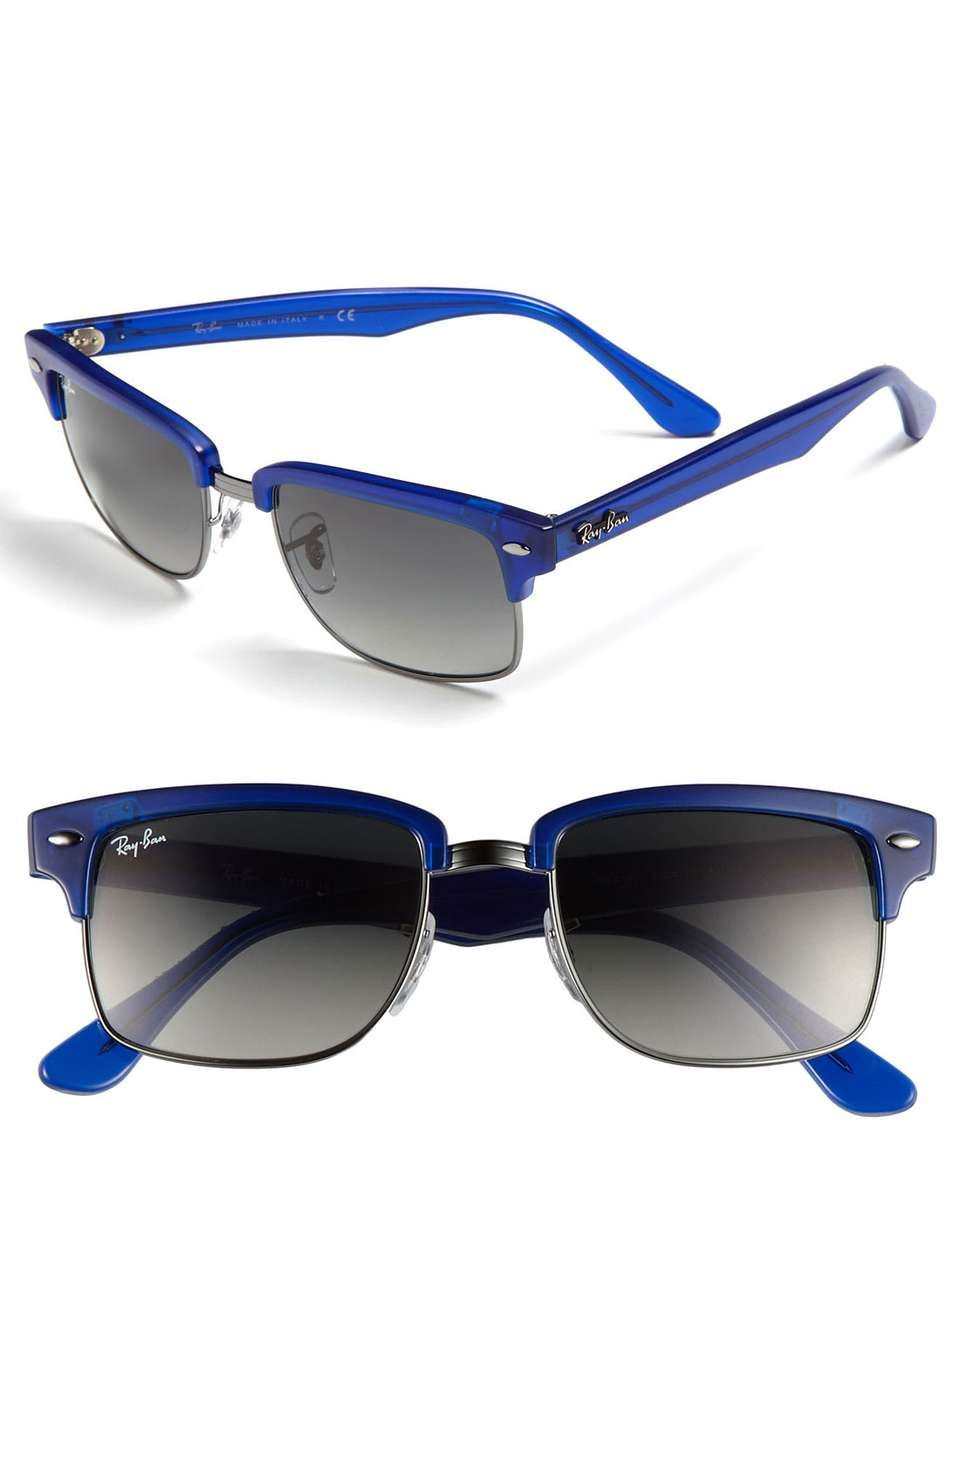 15c8a2f93a Clubmaster Square Ray Bans « One More Soul